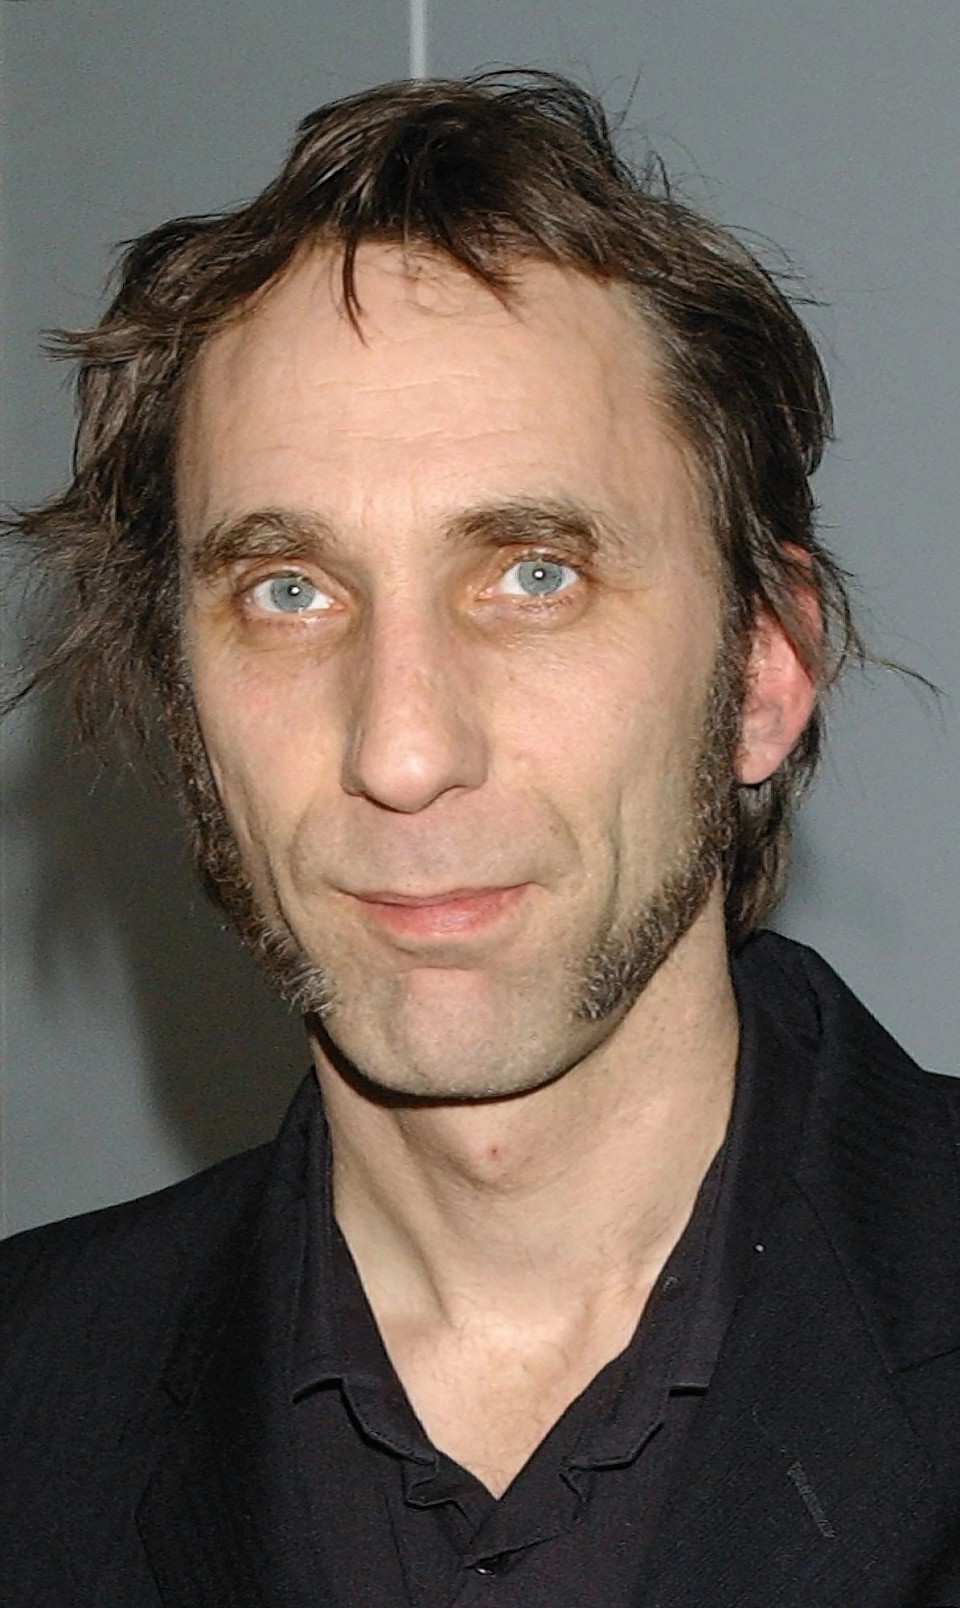 Award-winning author, Will Self, will attend the Being Human festival